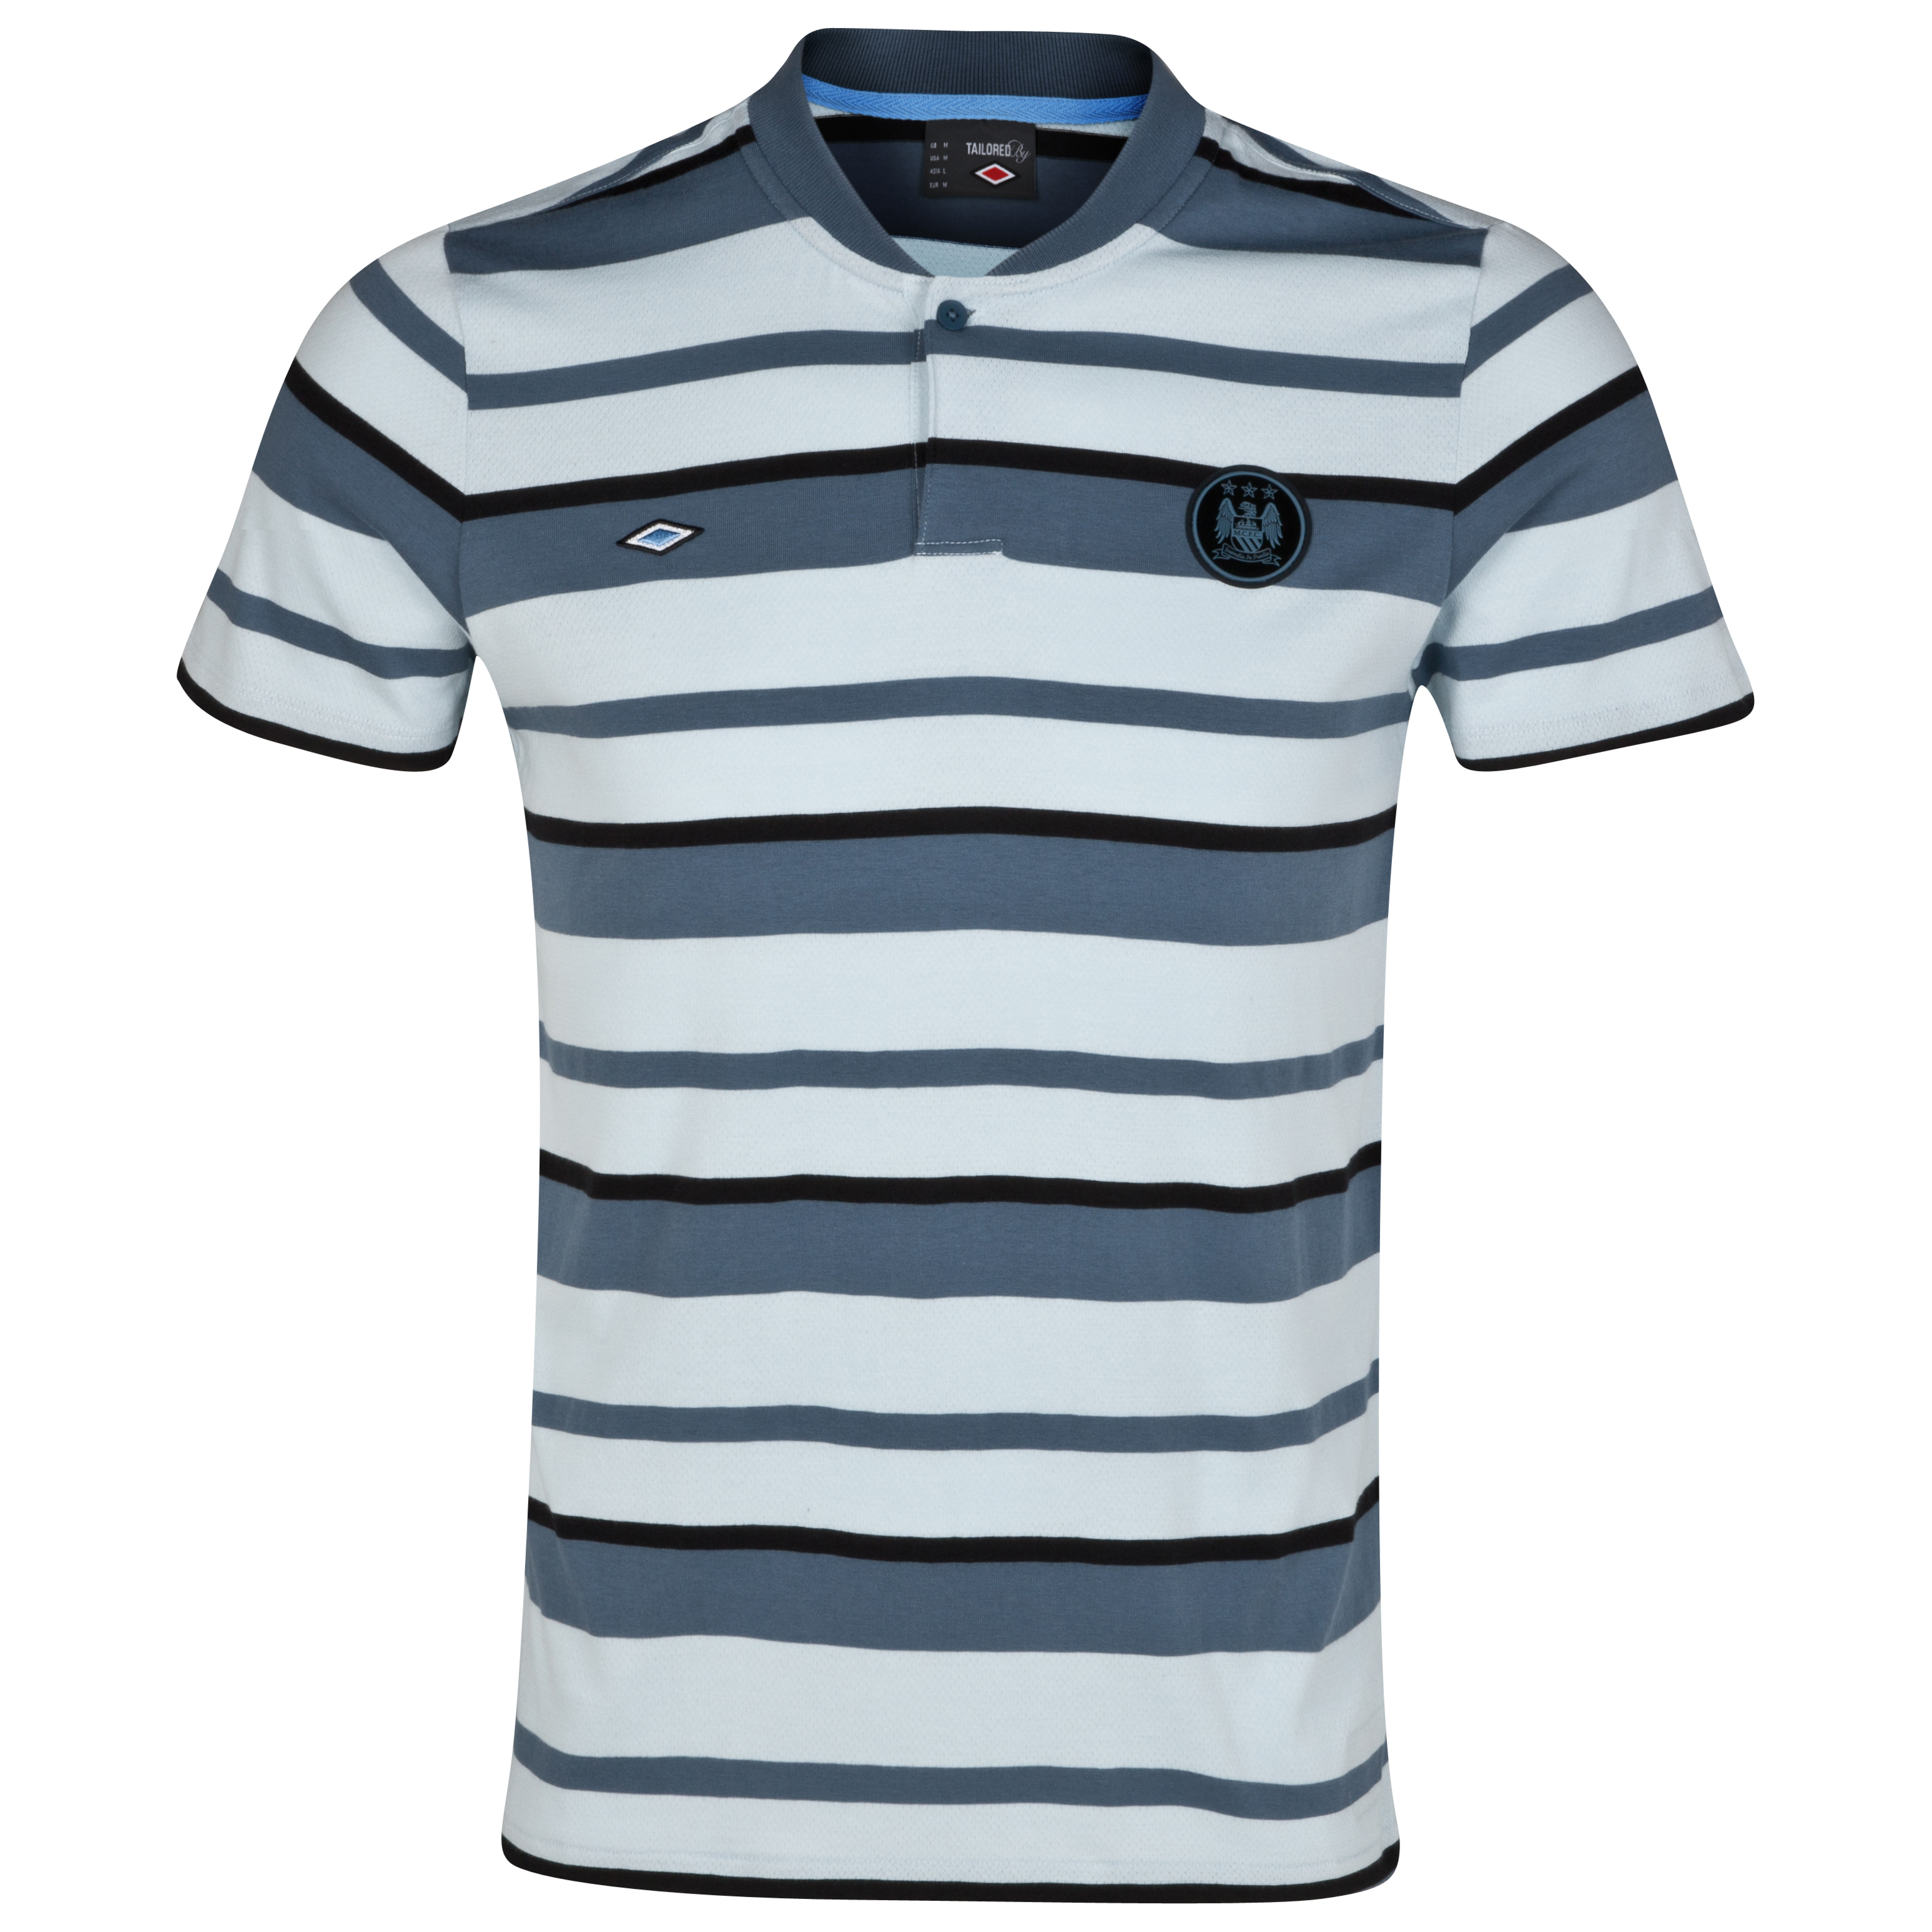 Manchester City Yarn Dye Stripe Polo - Baby Blue/Blue/Black